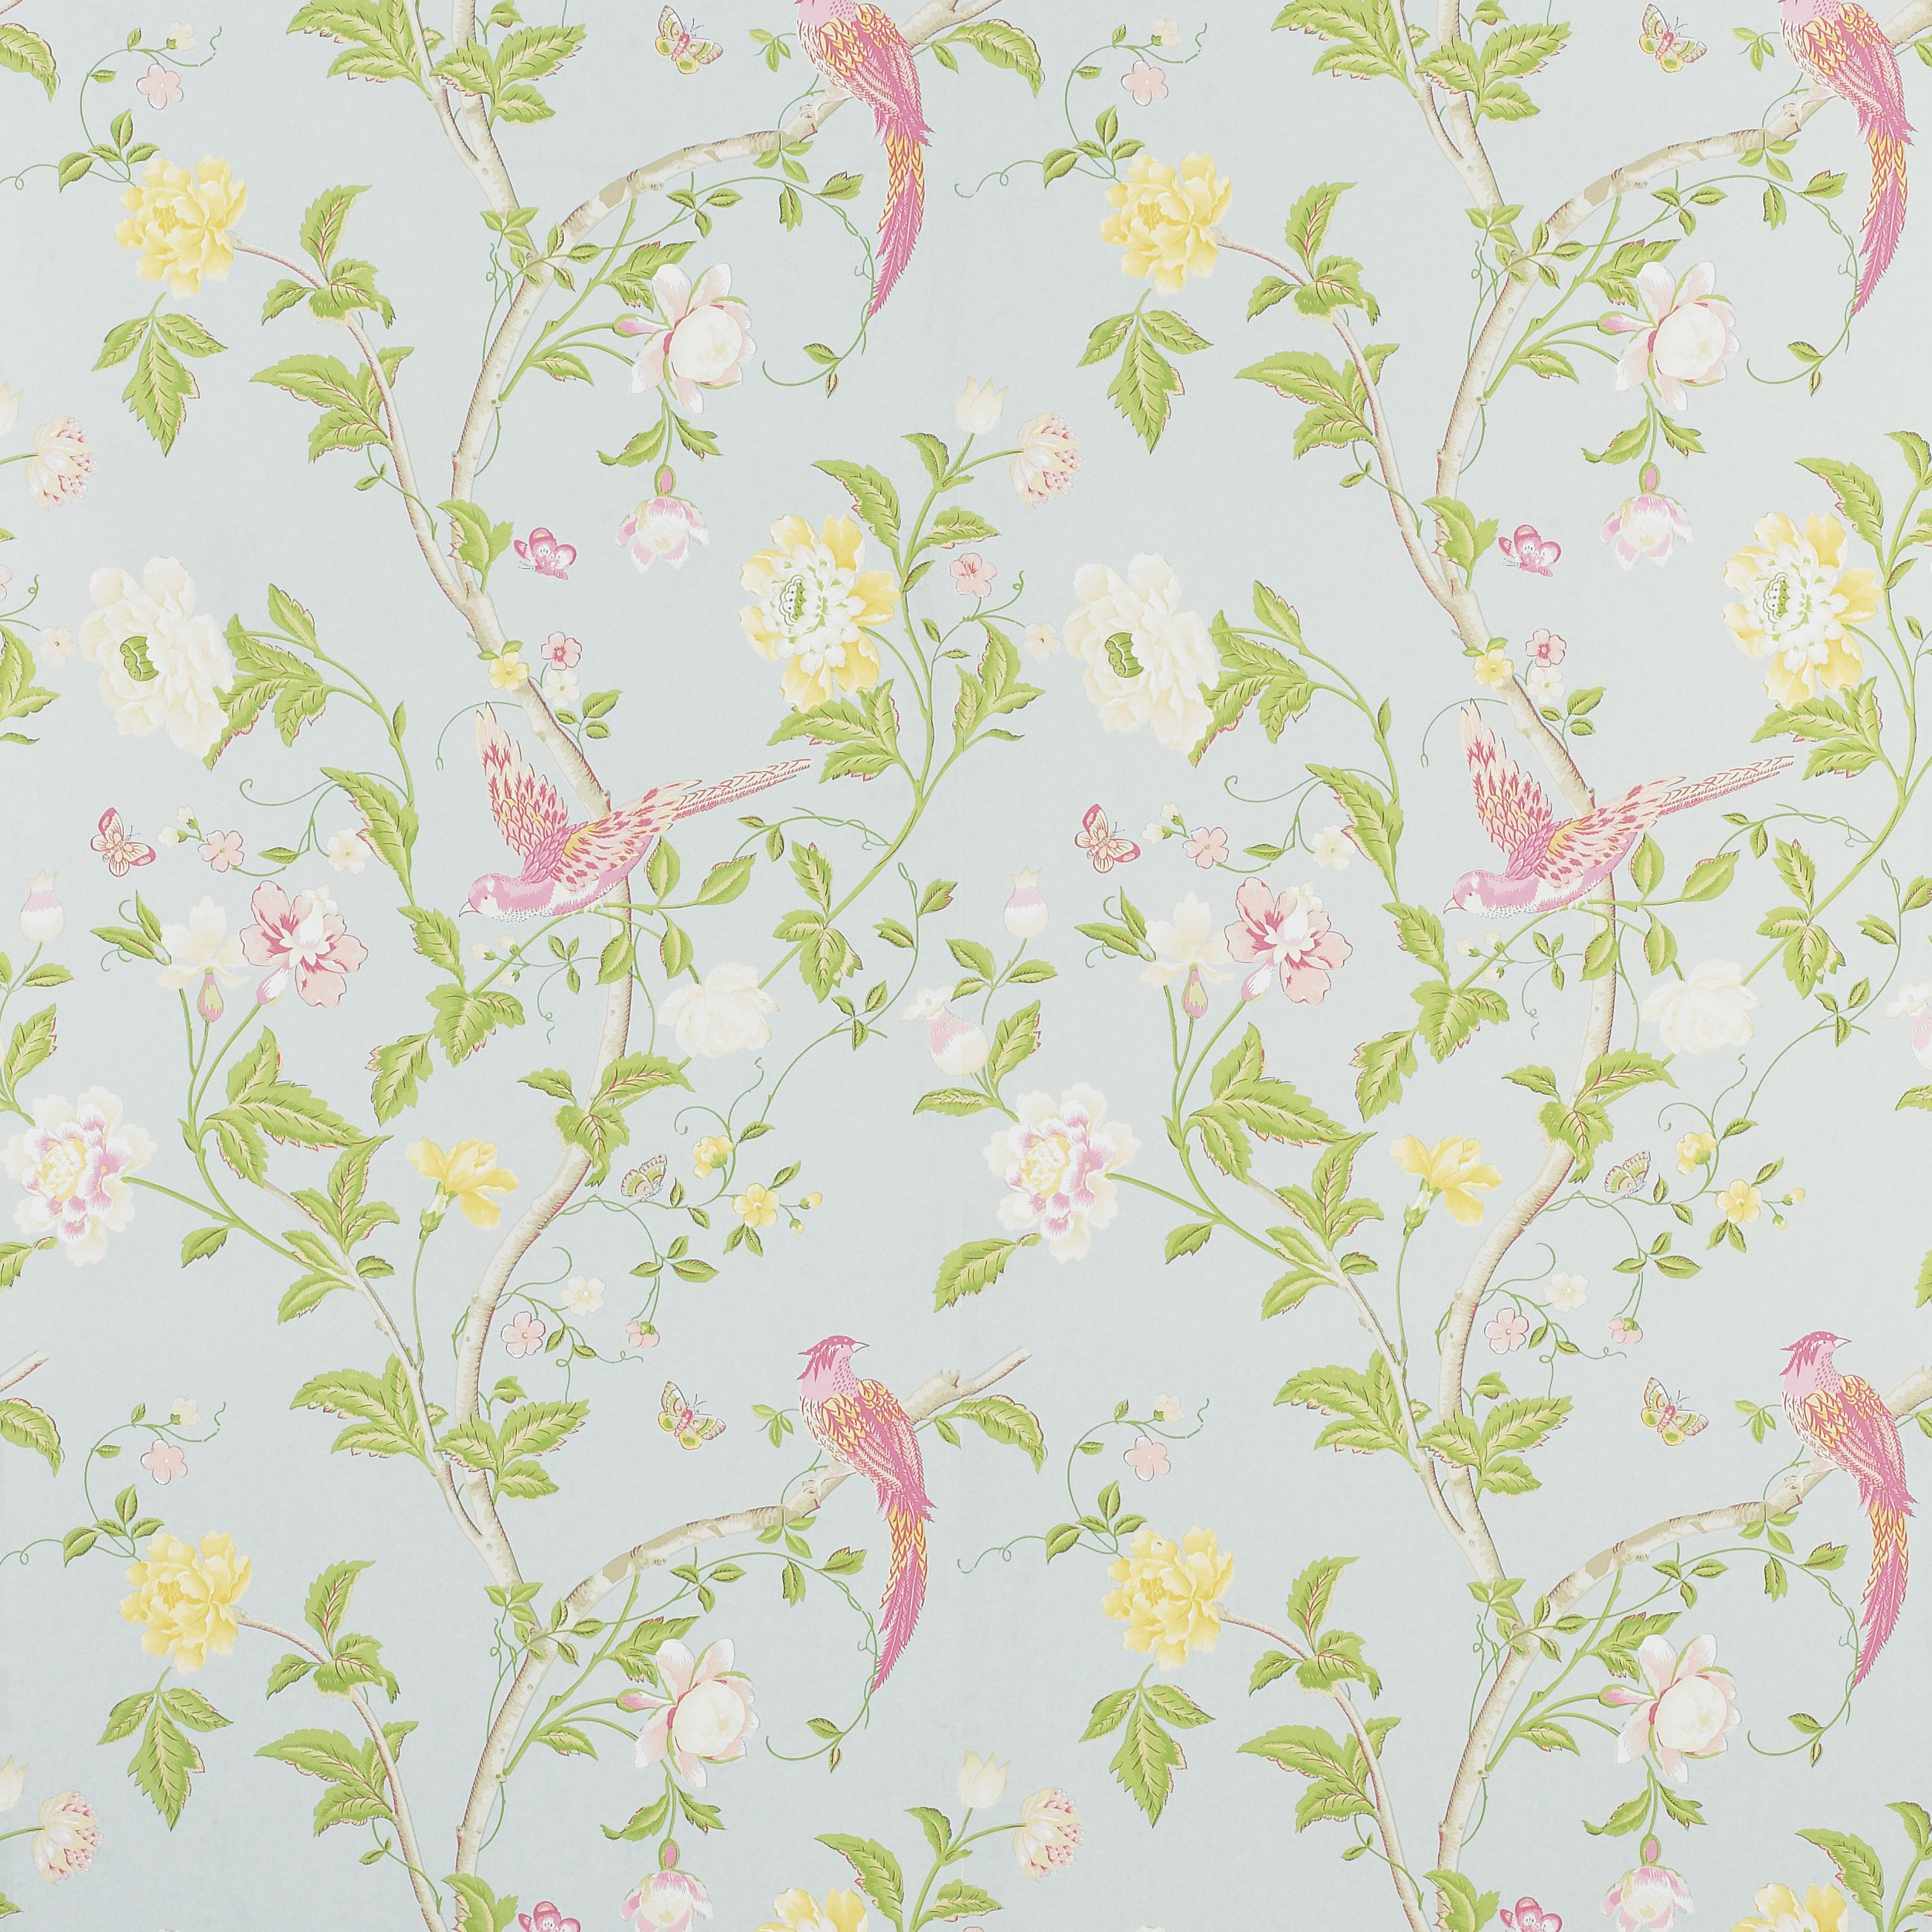 Laura Ashley Kitchen Wallpaper: #LauraAshleySS14. This Wallpaper Is Floral & Duck Egg Blue